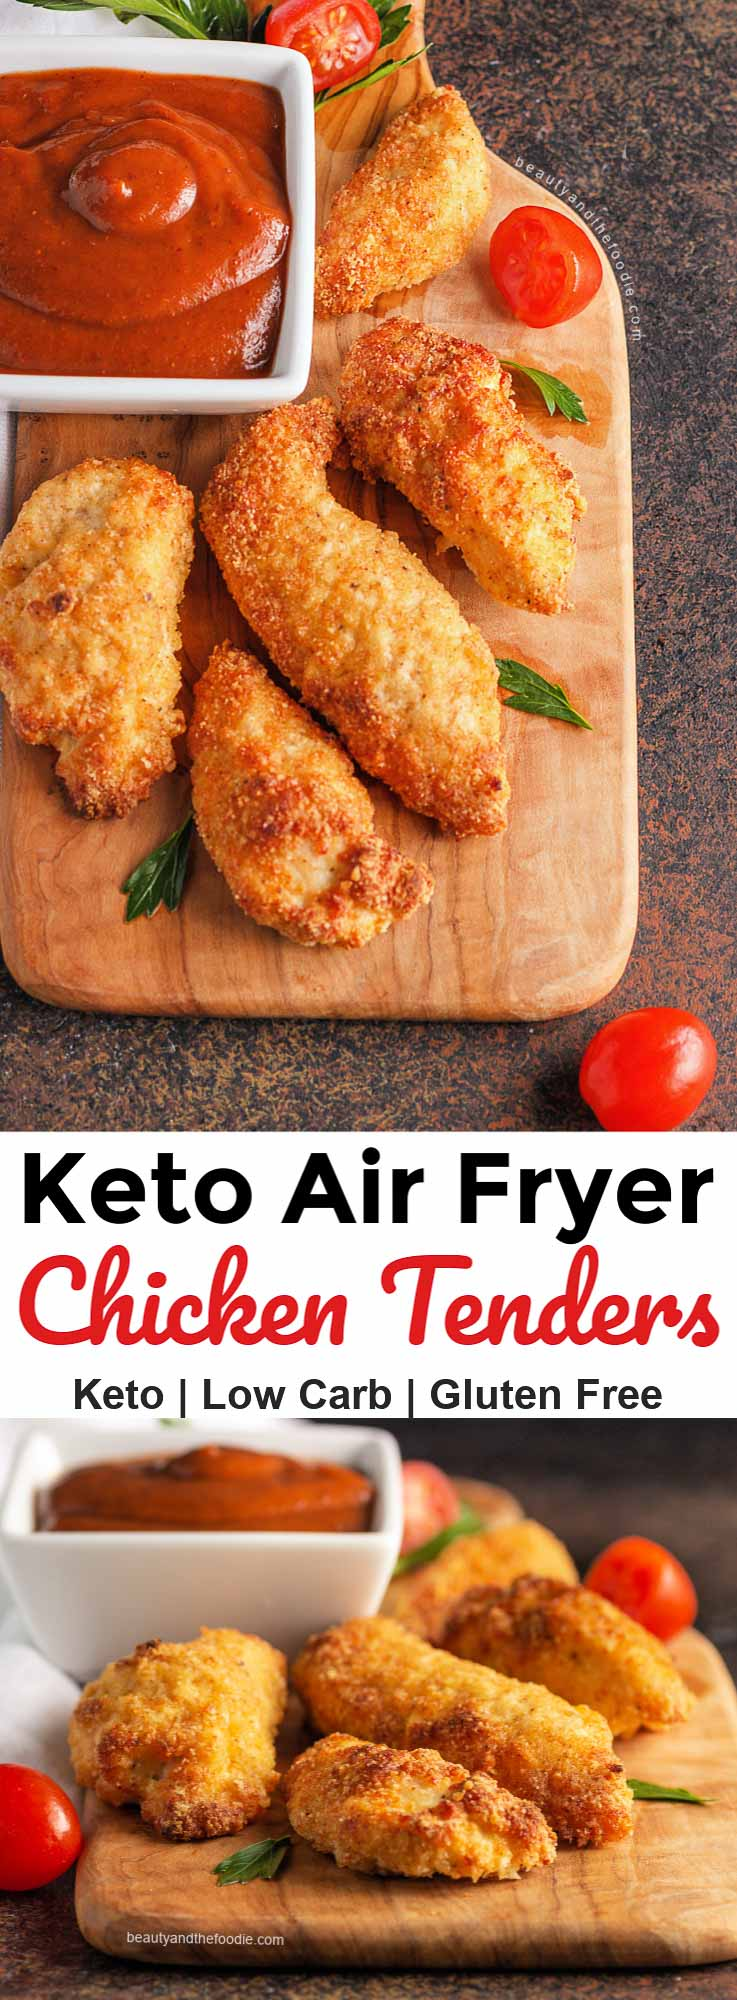 Keto Chicken Tender with air fryer & oven baked directions.